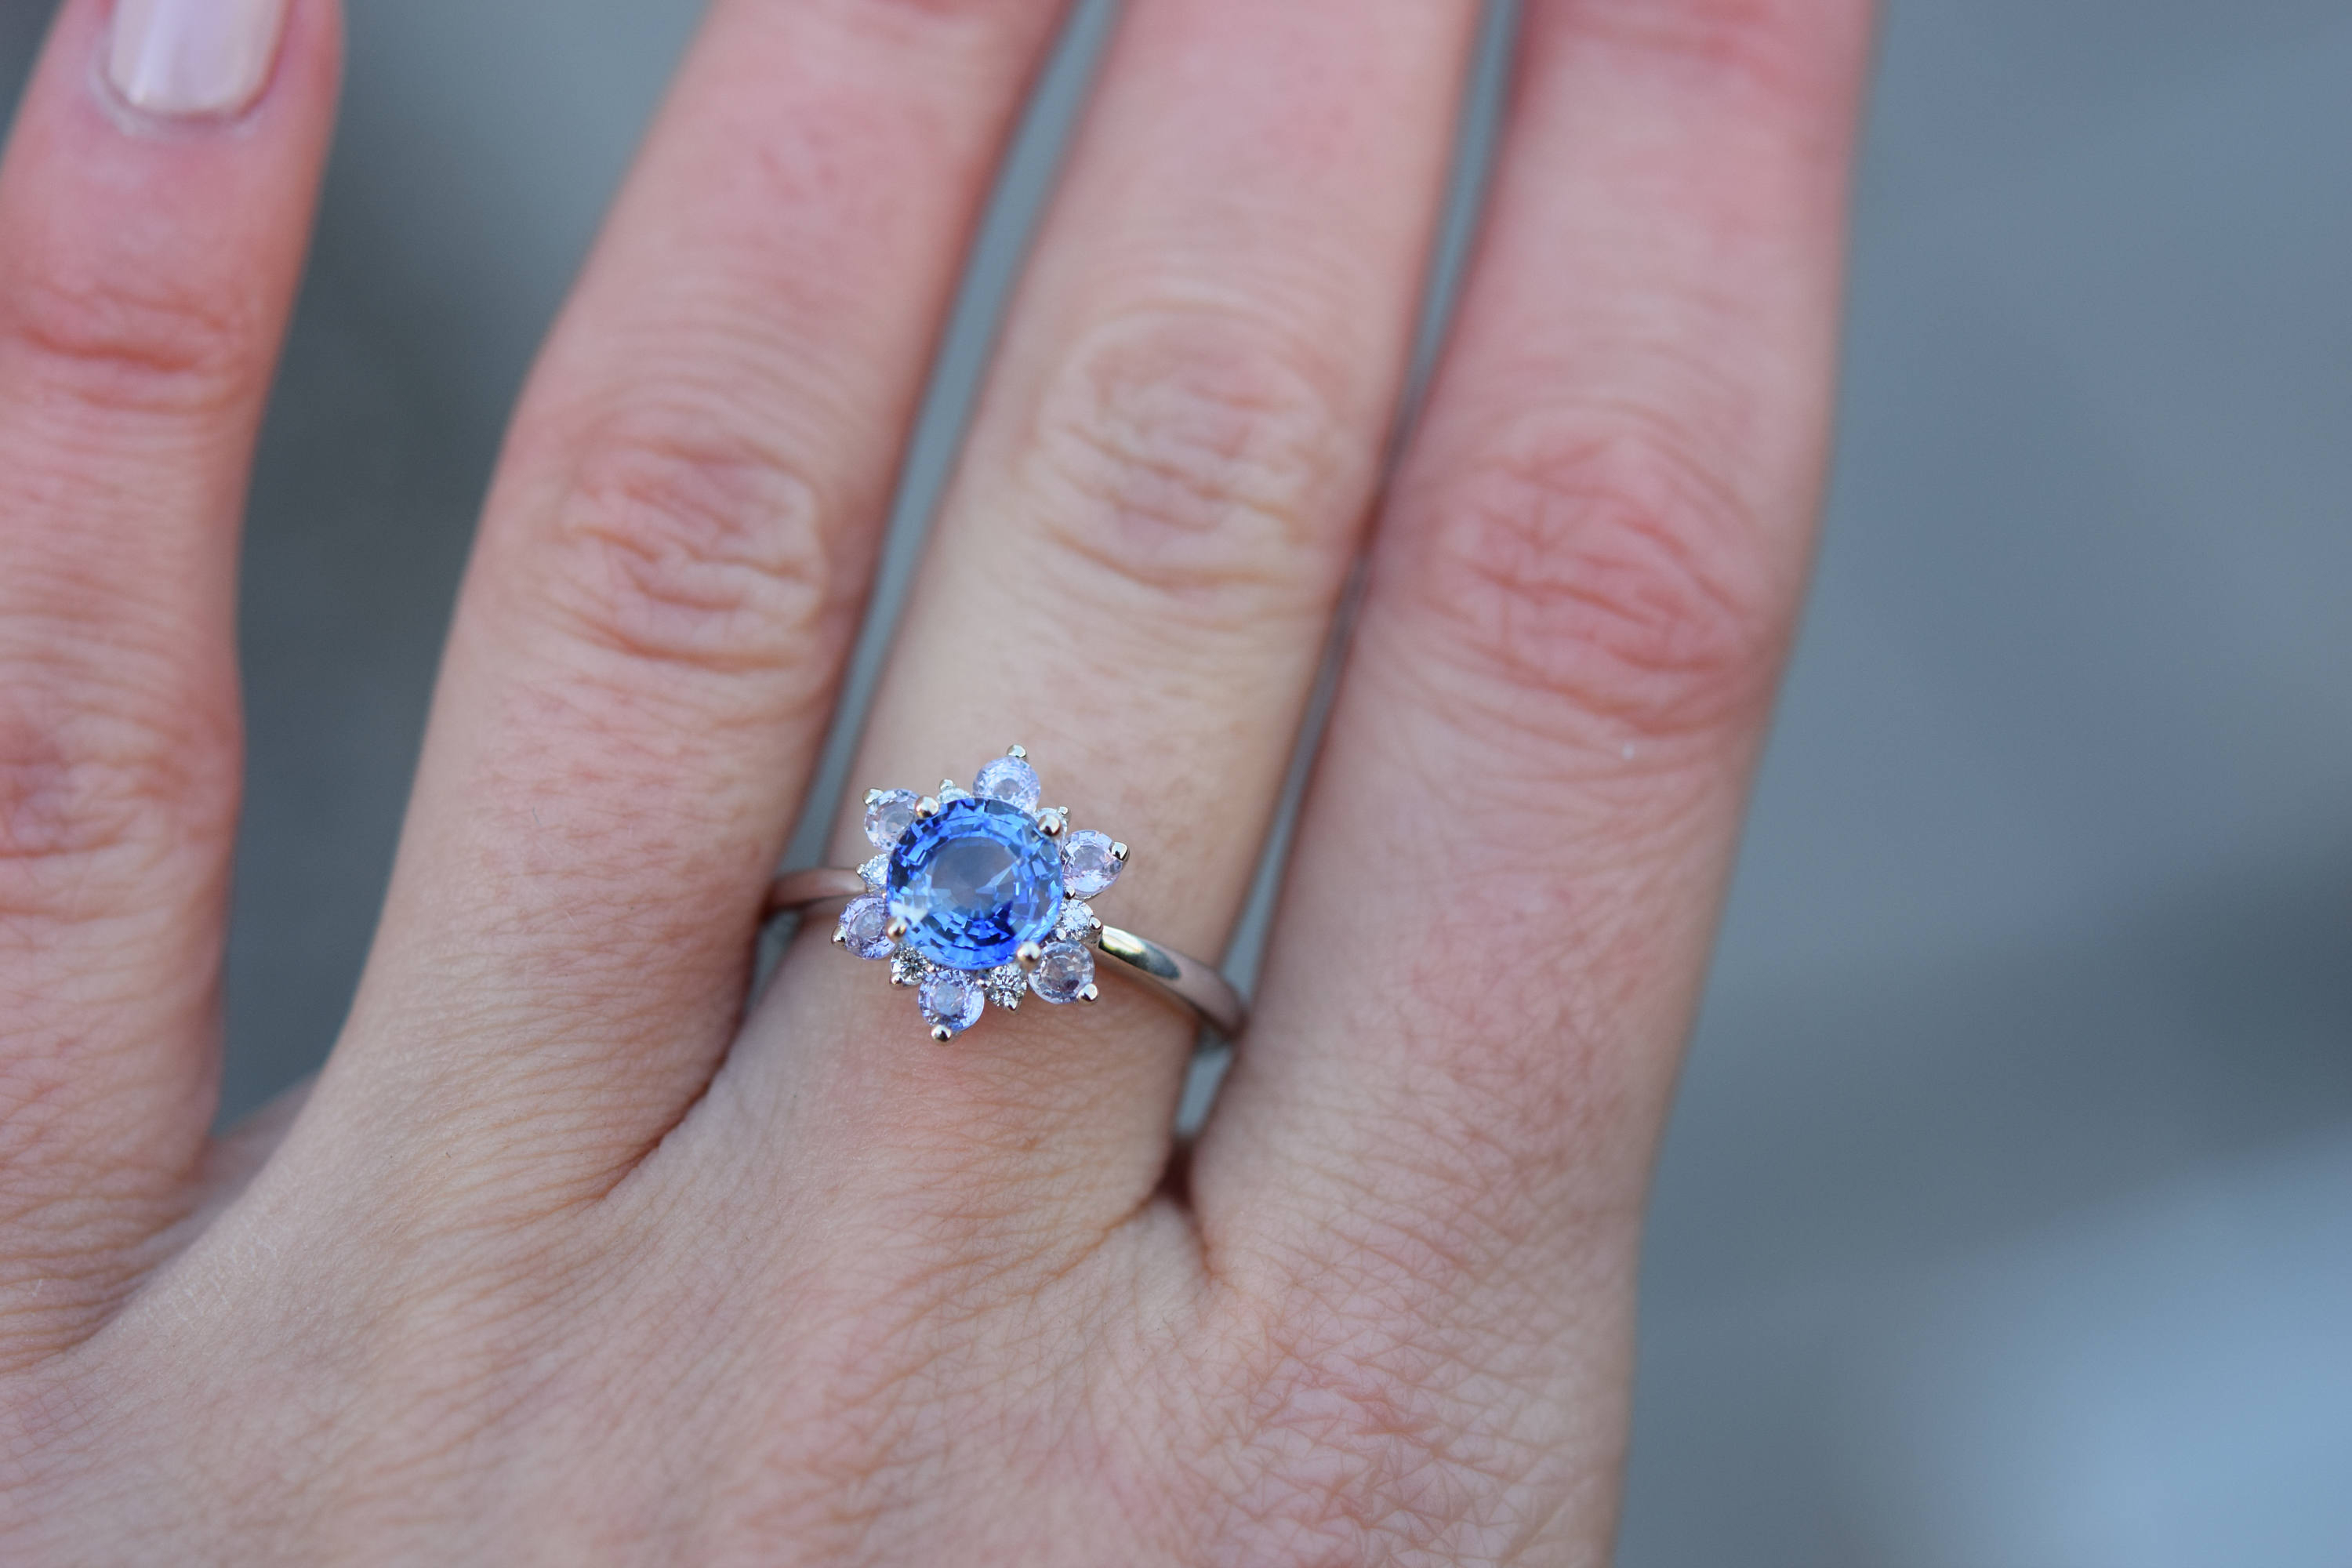 Top 10 Blue Engagement Rings For Women – In All Price Ranges | Jj Inside 2017 Blue Sparkling Crown Rings (Gallery 23 of 25)